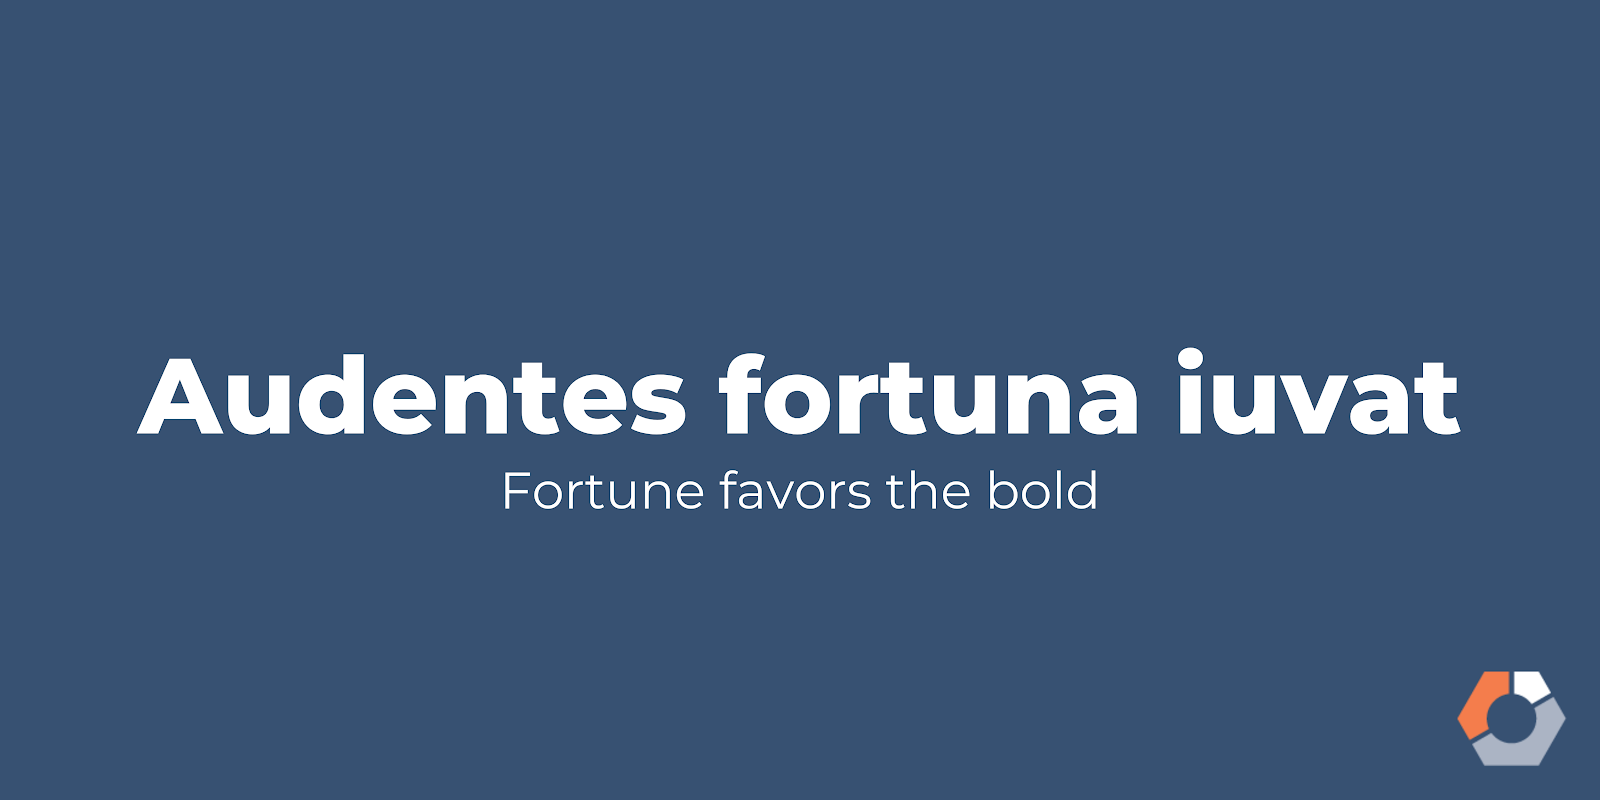 """""""Audentes fortuna iuvat"""" translates to """"fortune favors the bold."""""""